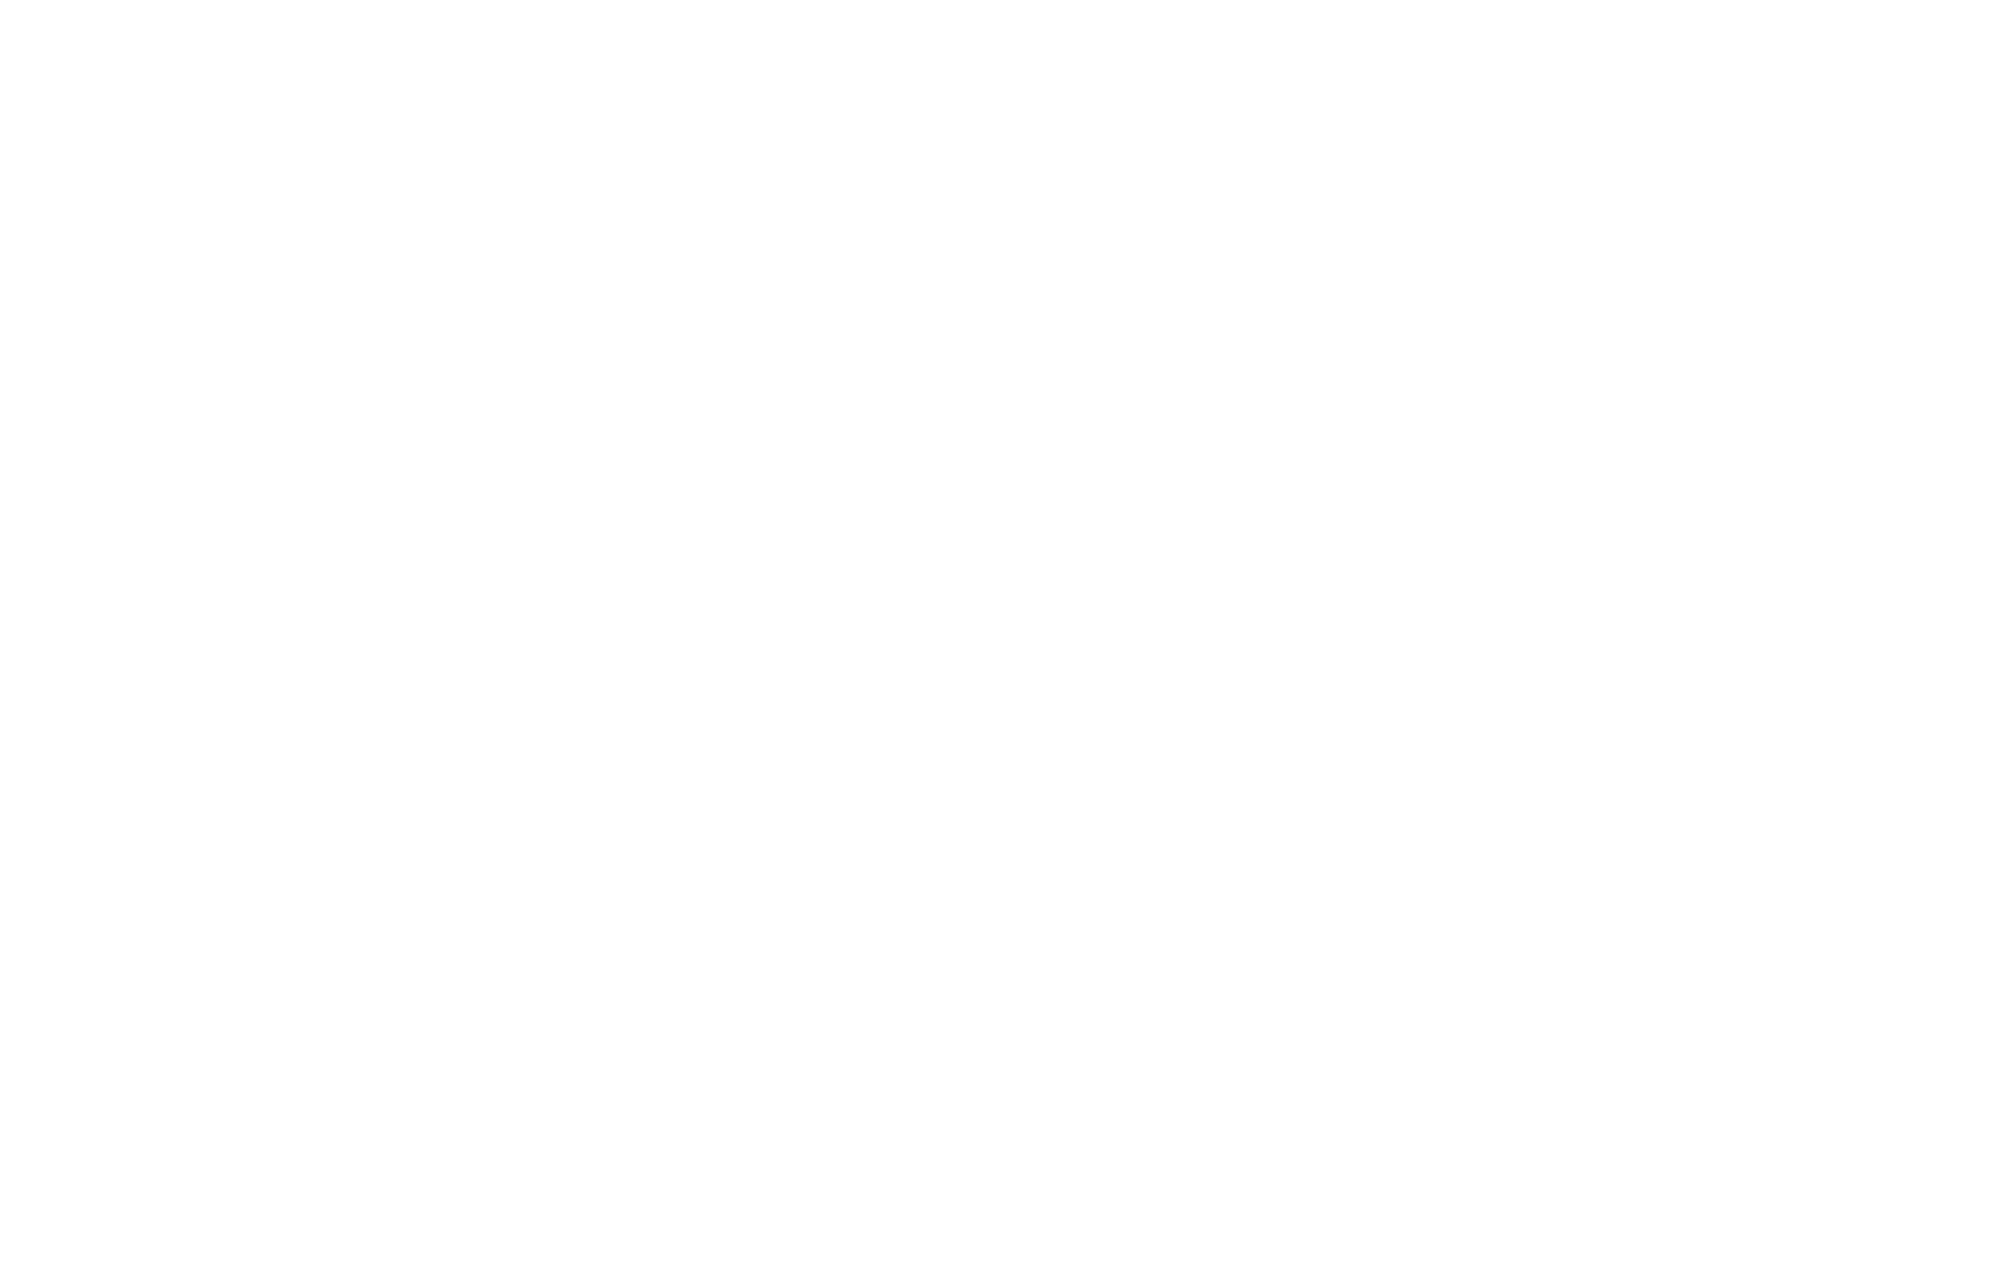 Global Farms Direct-logo-white.png